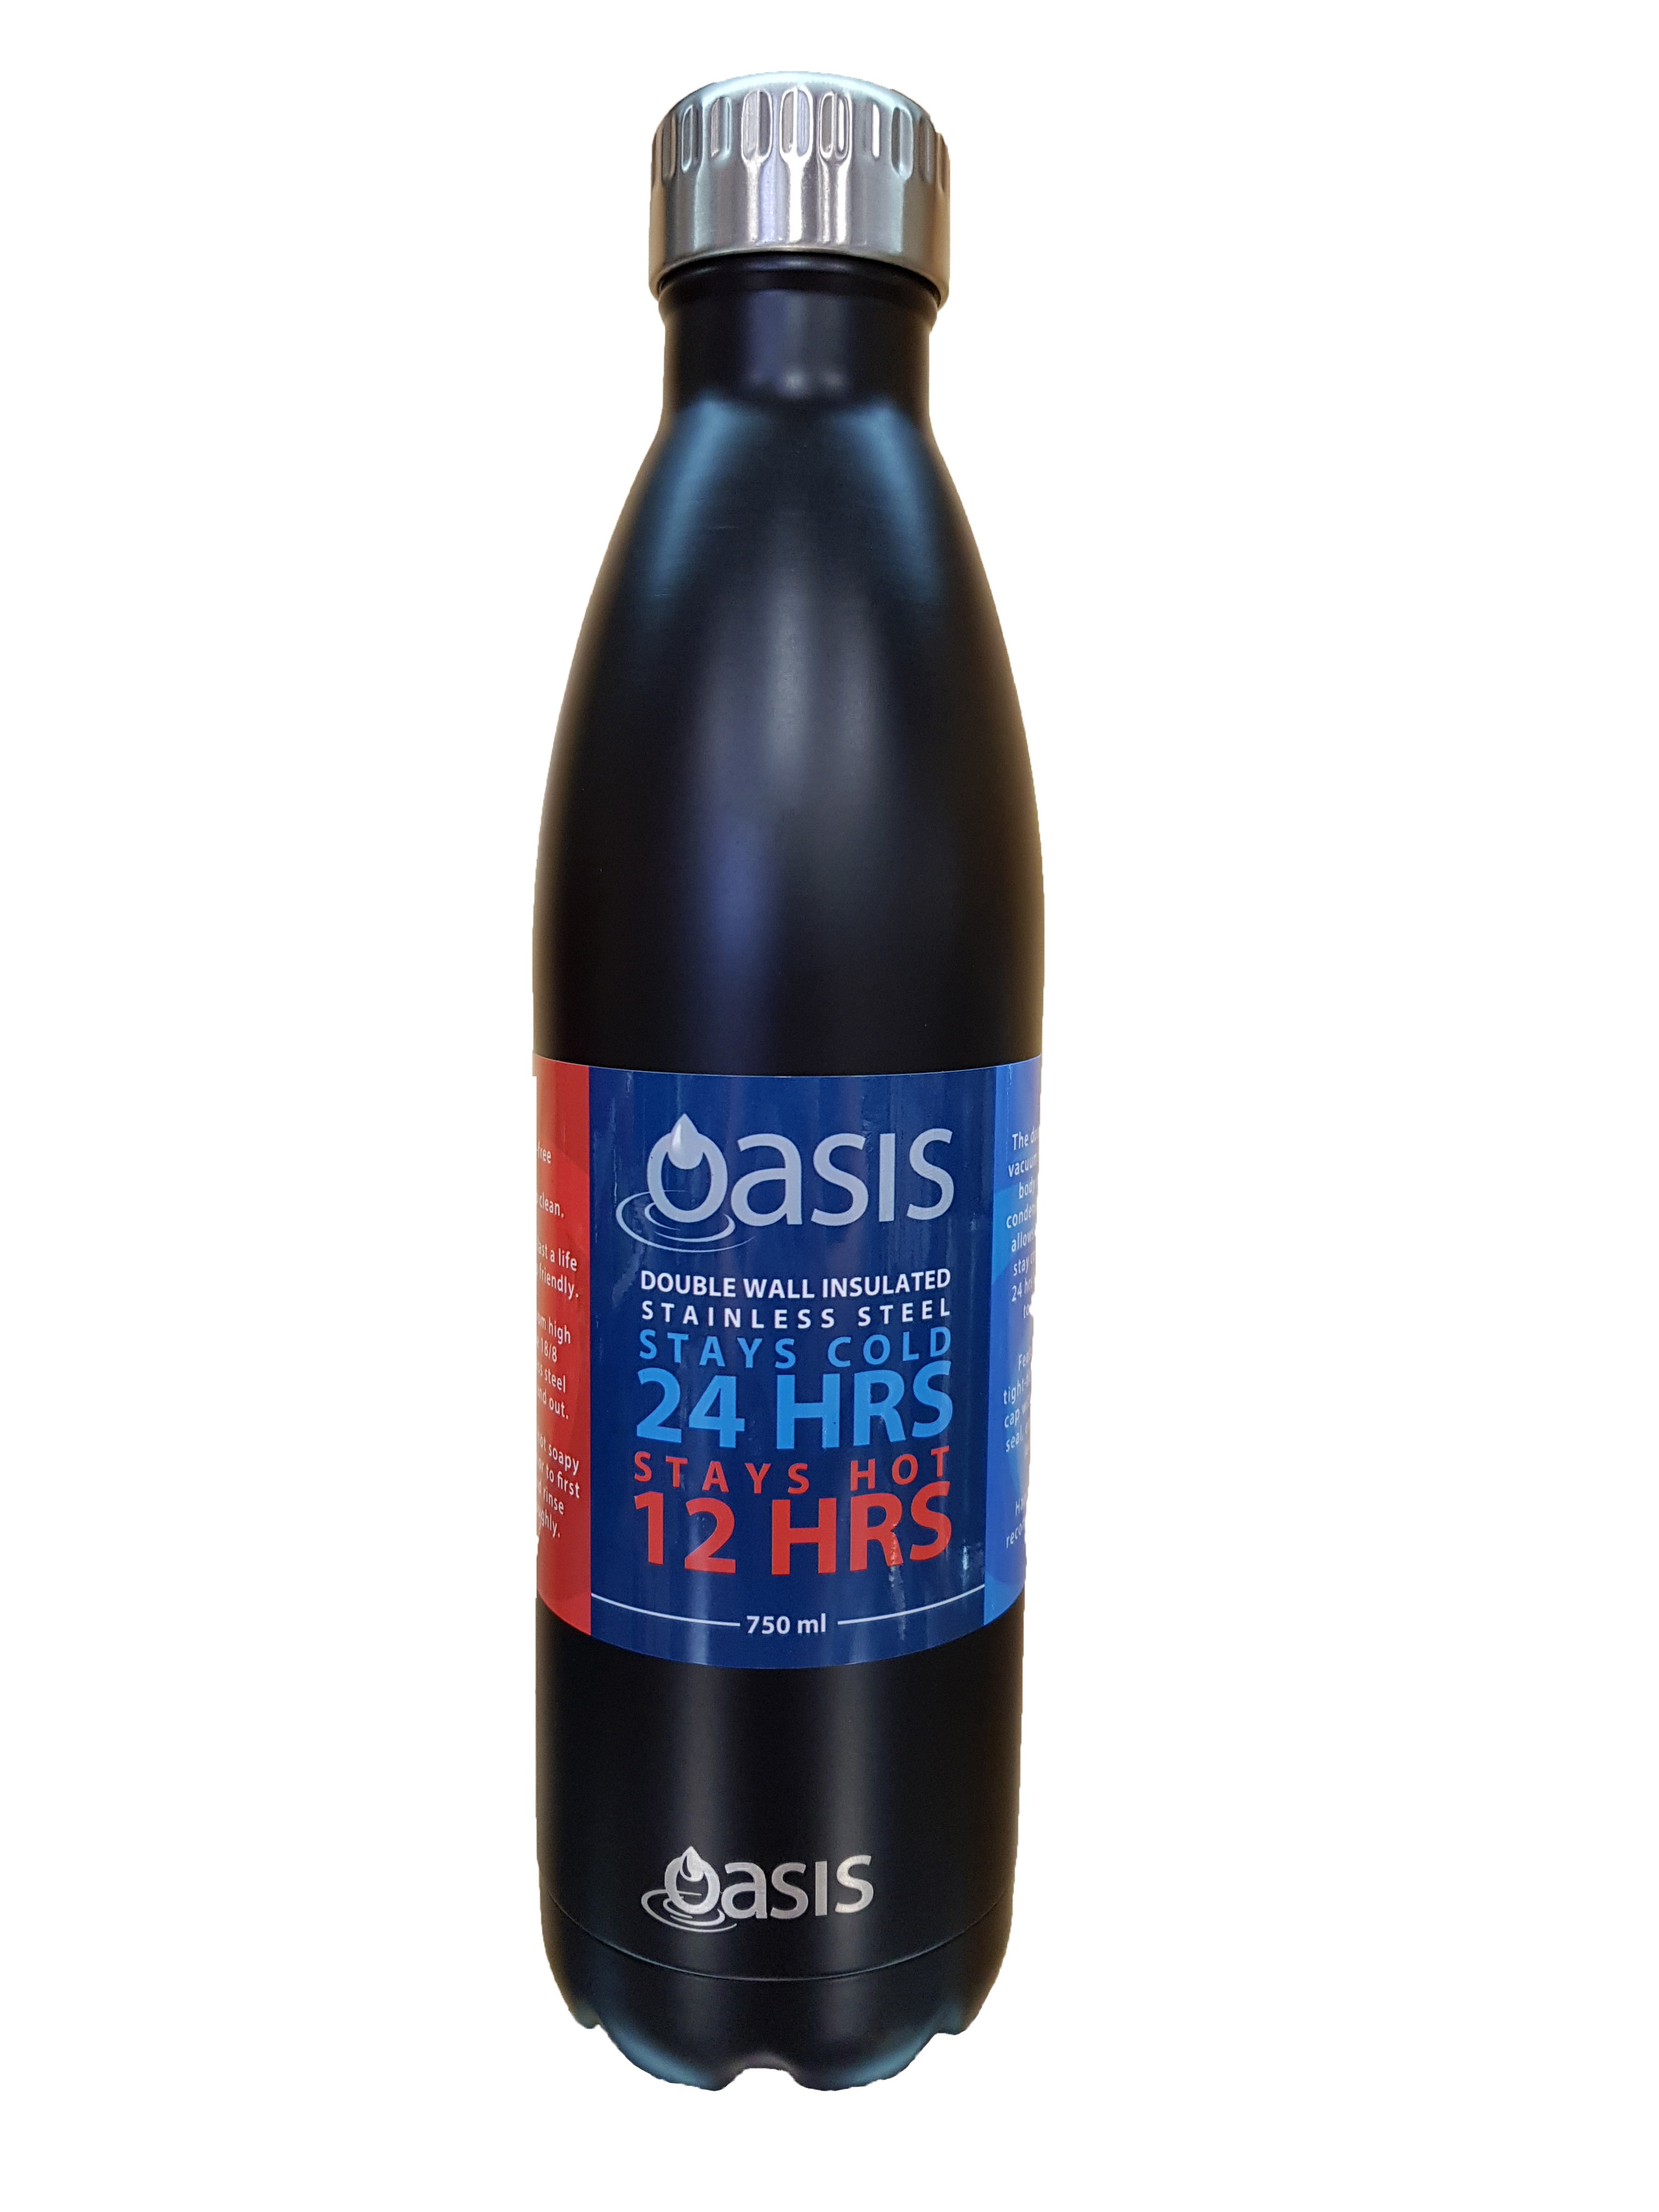 Oasis Insulated Stainless Steel Drink Bottle Matte Black